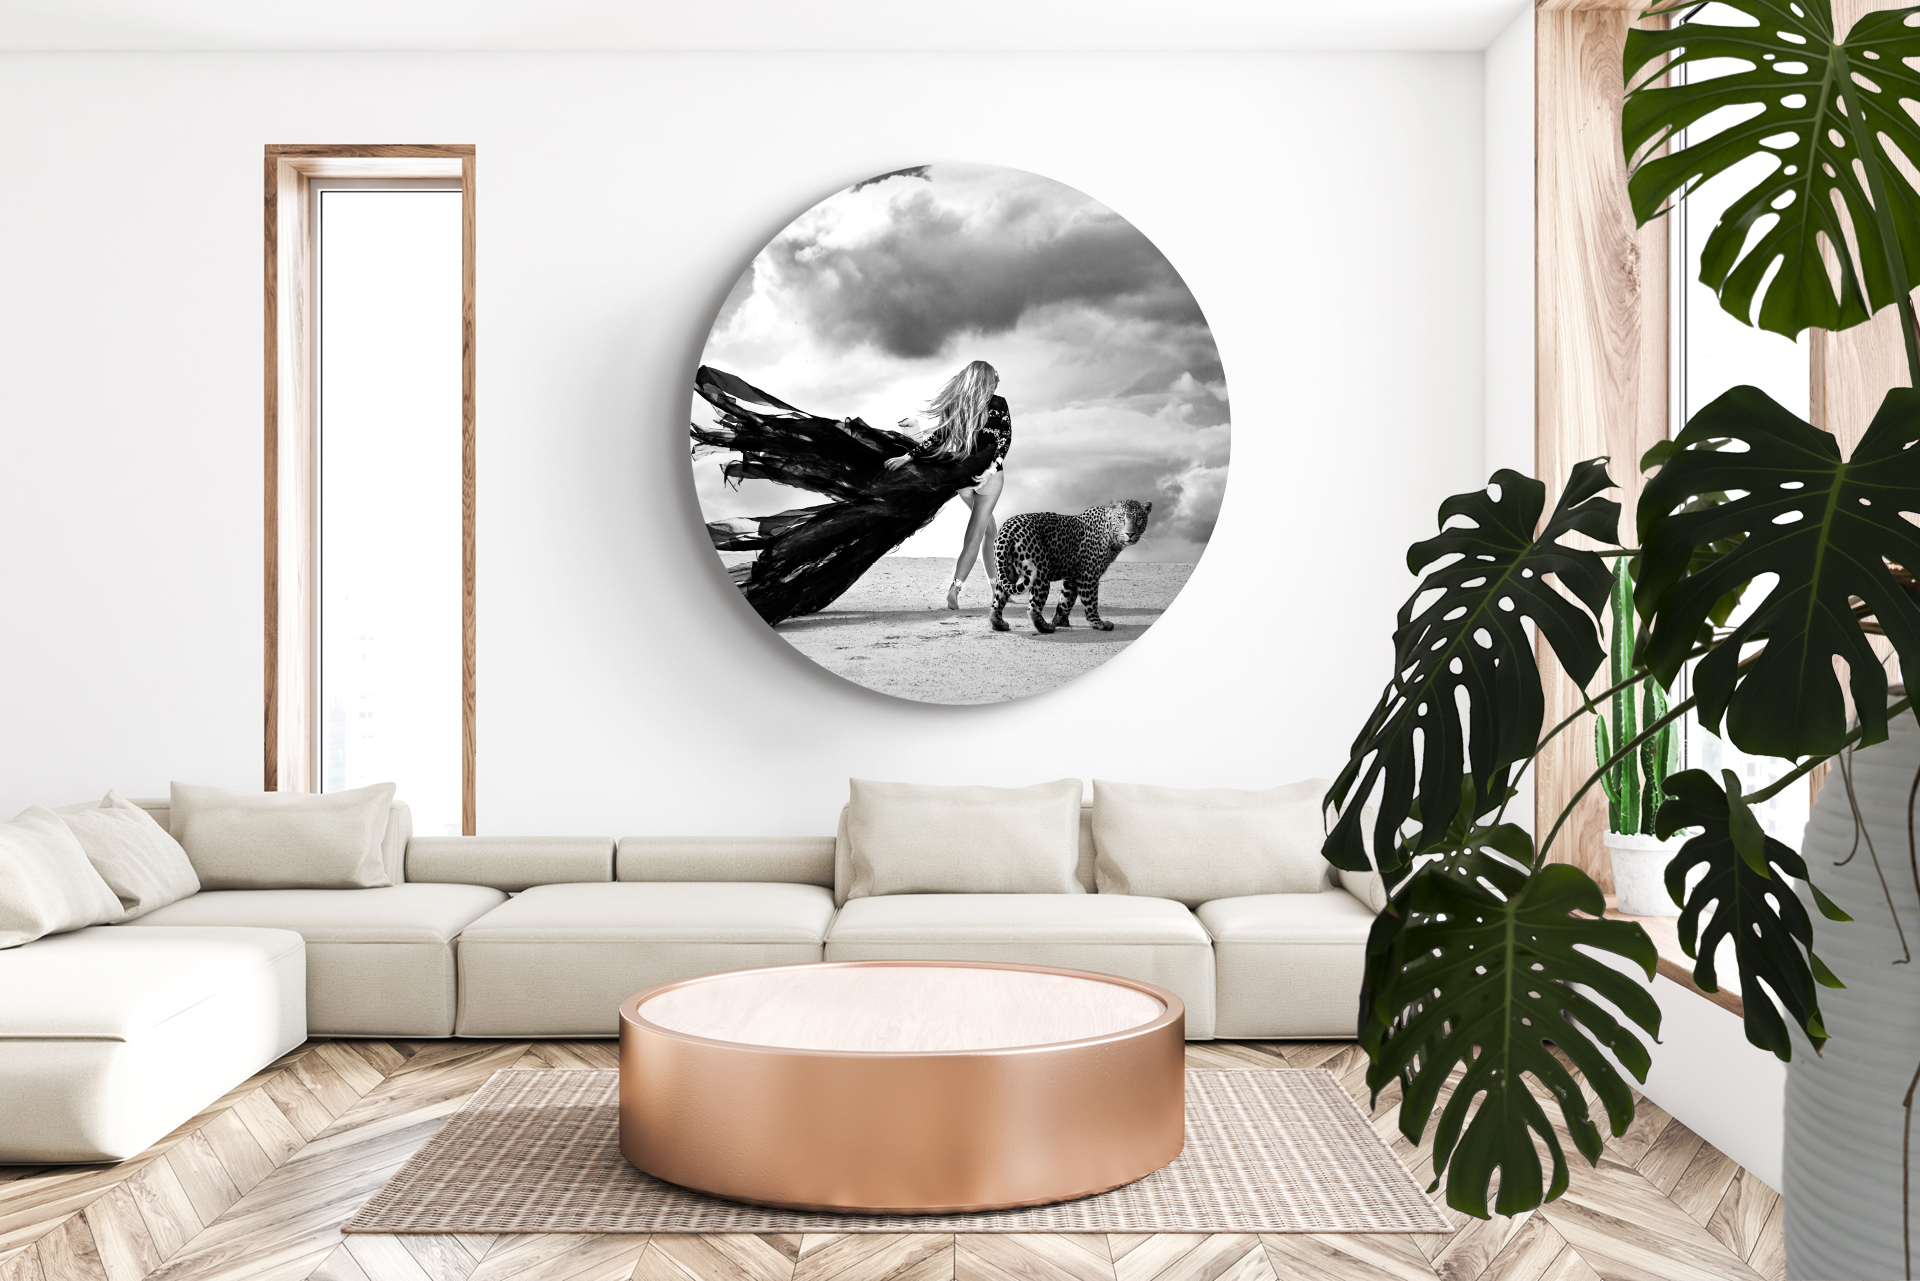 mirage in circle in living room